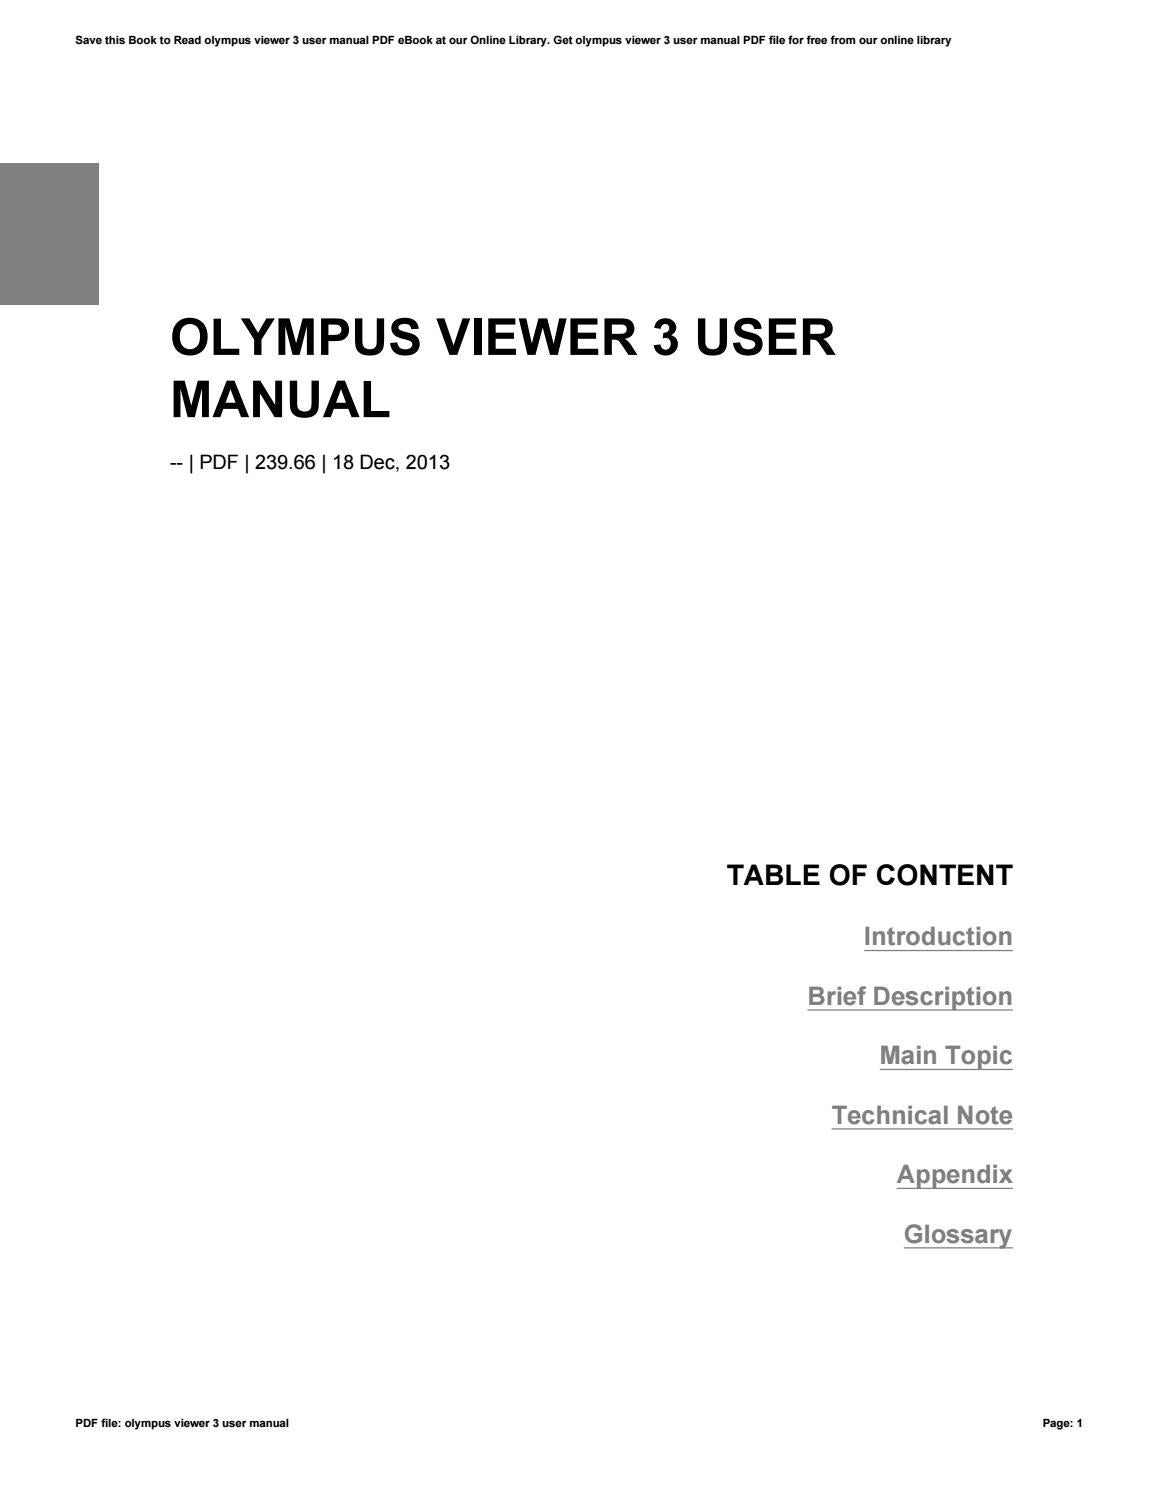 Olympus viewer 3 instruction manual